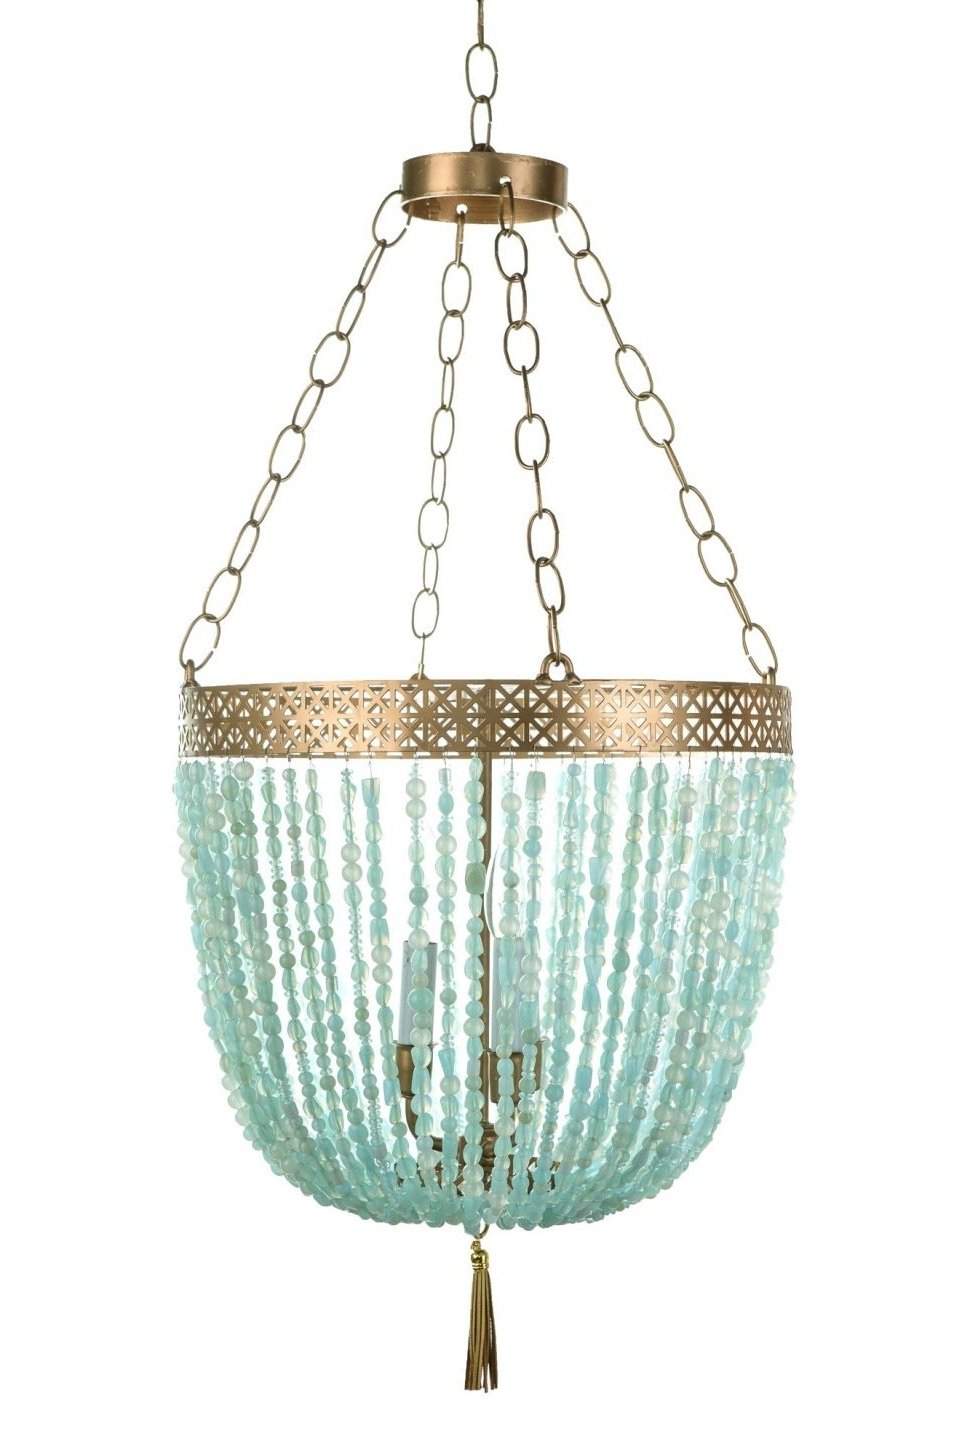 Chandeliers Design : Magnificent Turquoise Blue Chandelier Light Intended For Current Turquoise Blue Beaded Chandeliers (View 3 of 15)